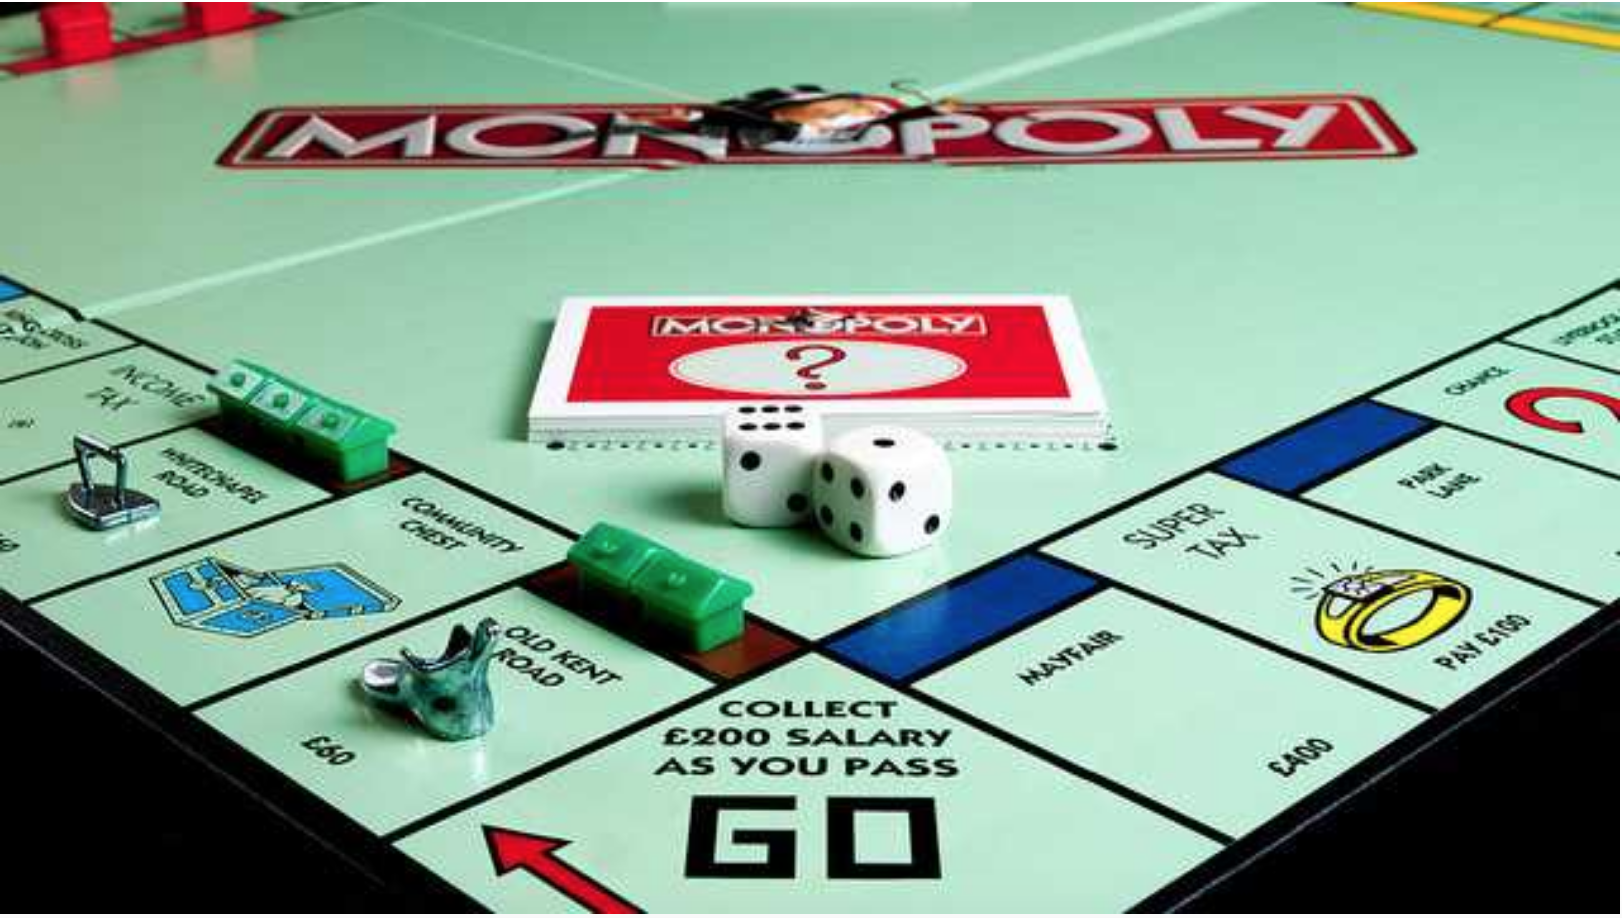 Picture Taken from https://www.wlwt.com/article/life-size-monopoly-game-to-take-over-loveland/3613116